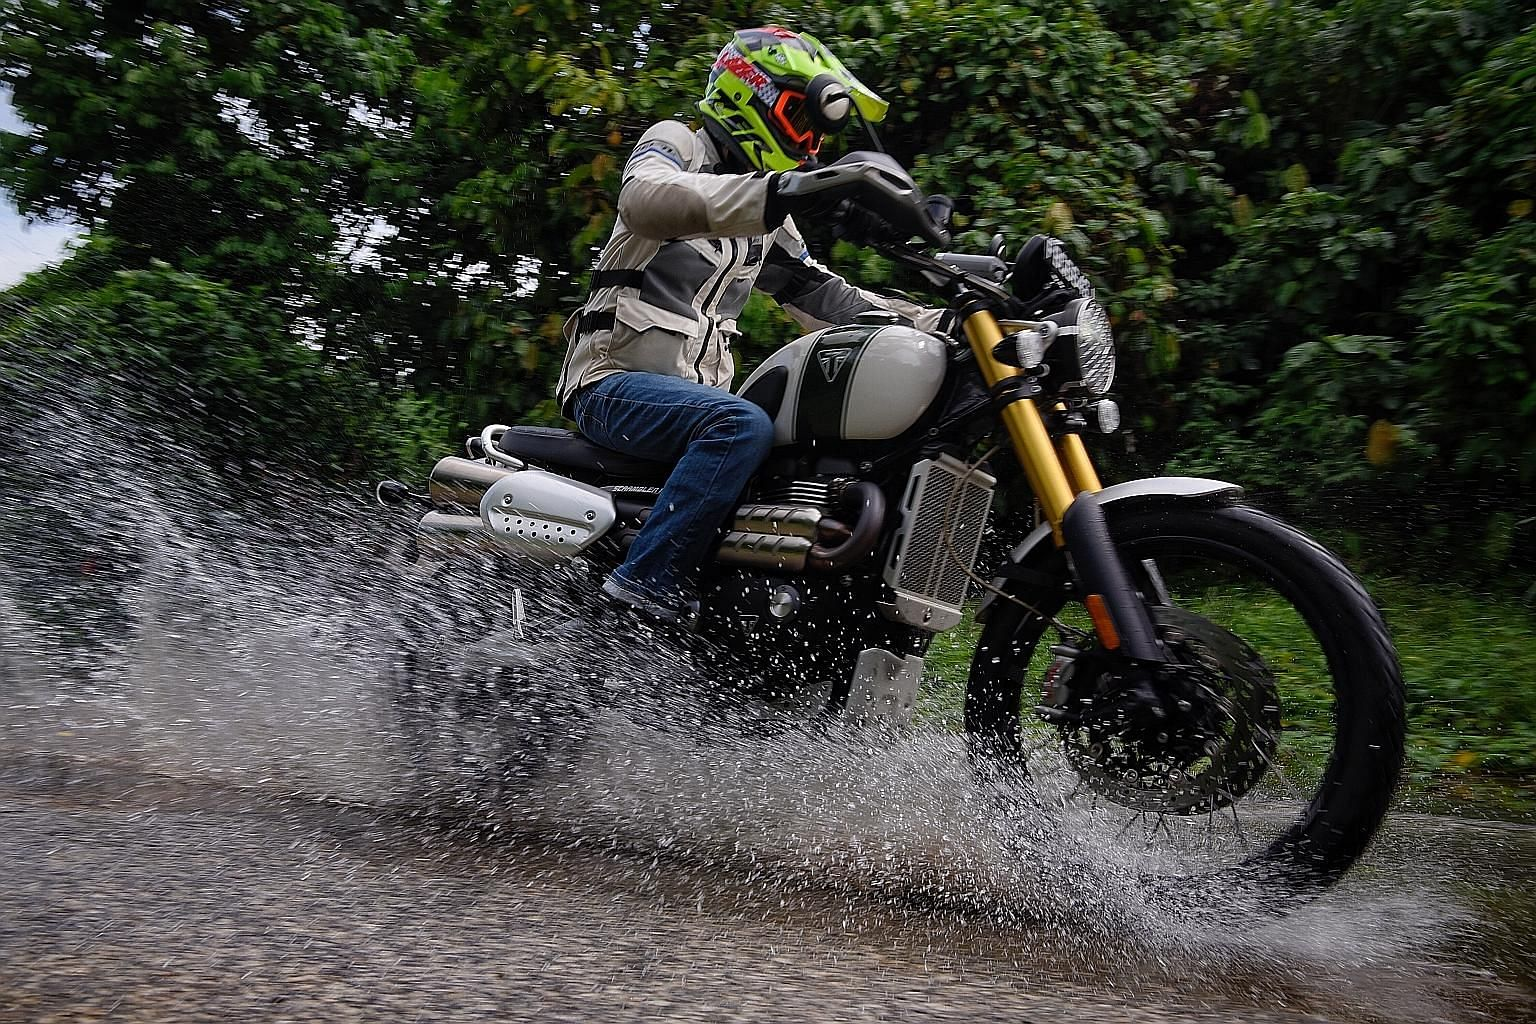 The Triumph Scrambler 1200 XE can do some light off-road sessions and its appeal lies in its classic lines and modern technology.